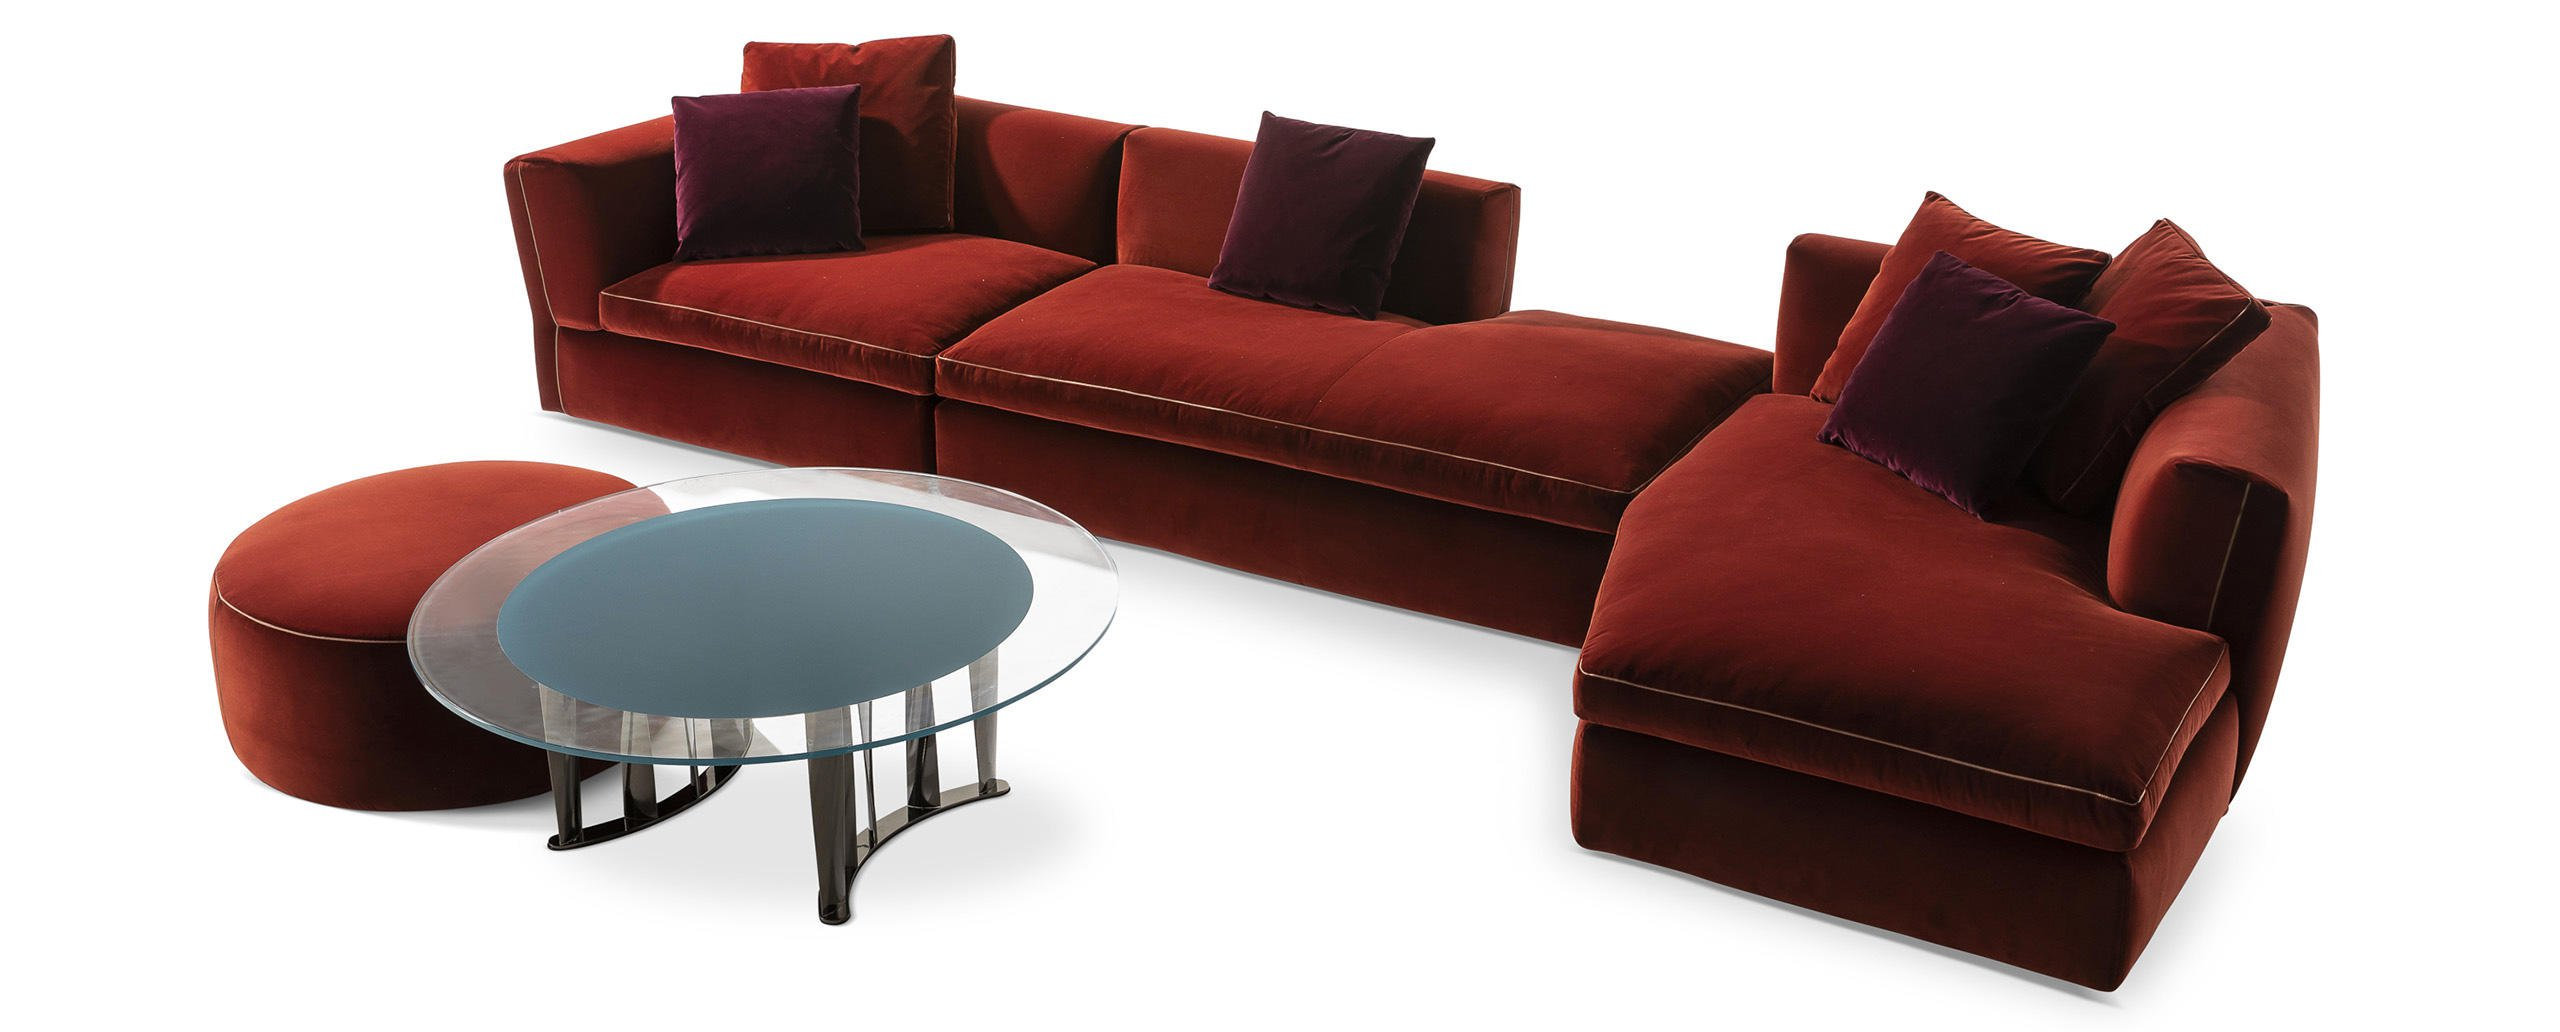 6_cassina_dress-up_sofa_system_rodolfo_dordoni